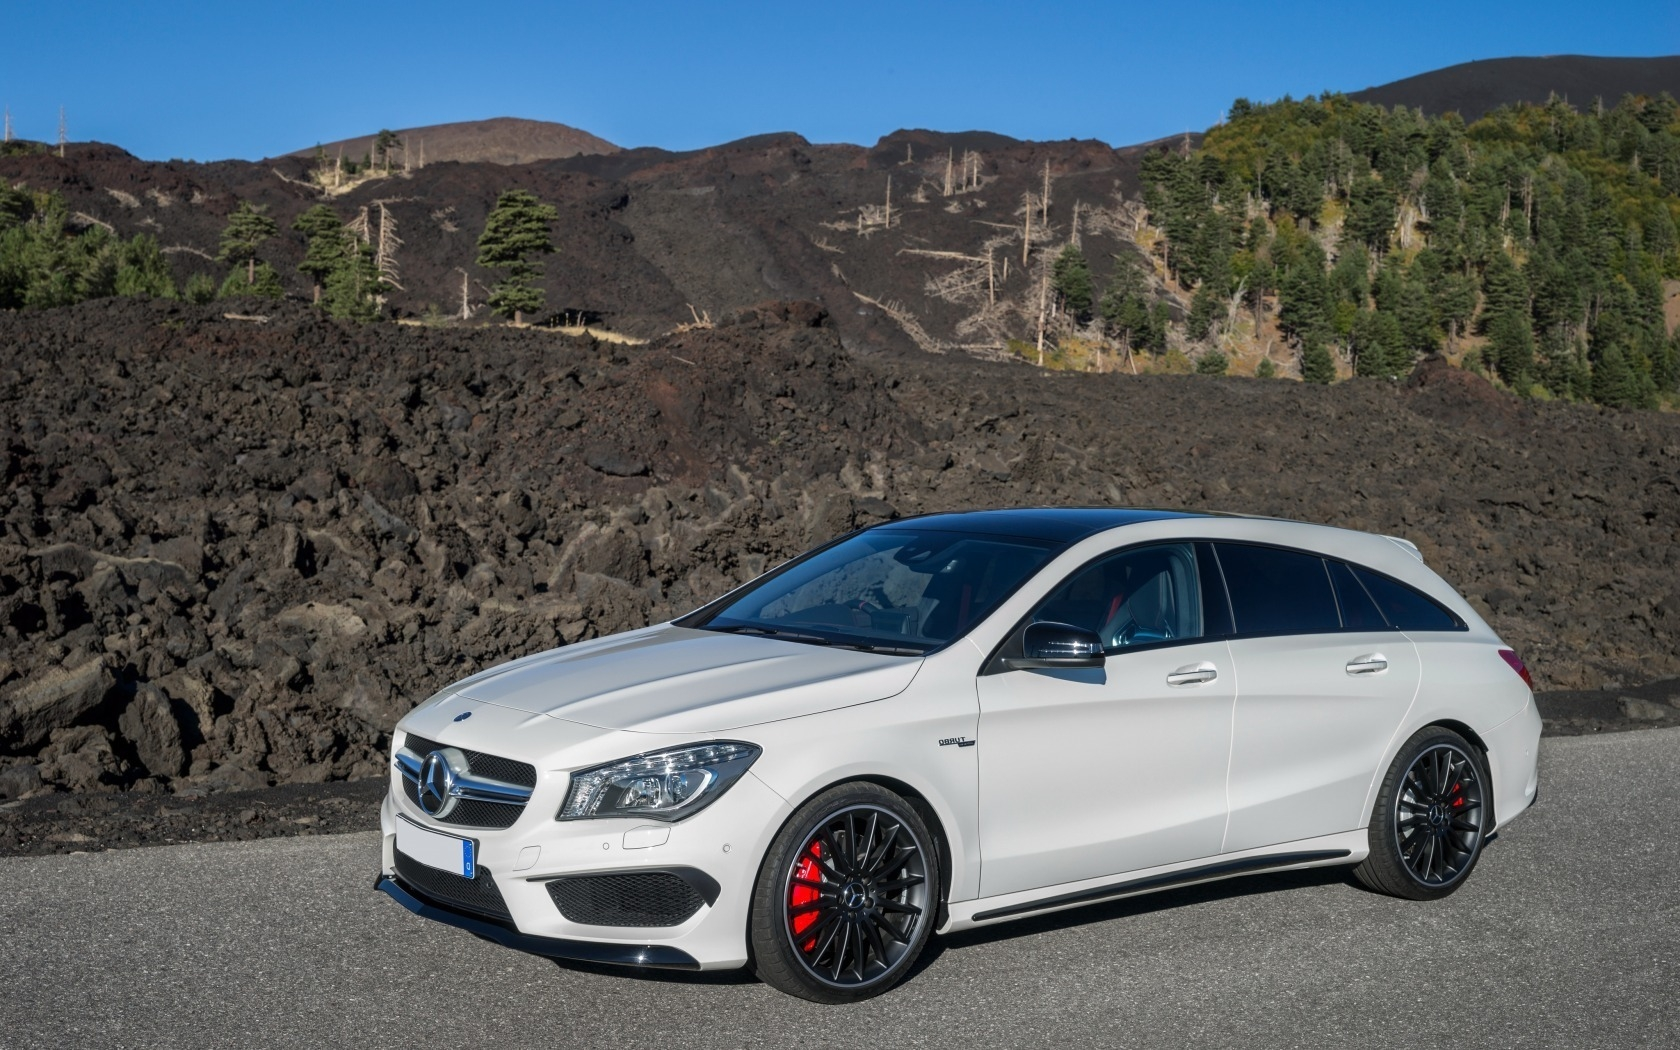 Mercedes Benz CLA 45 AMG for 1680 x 1050 widescreen resolution